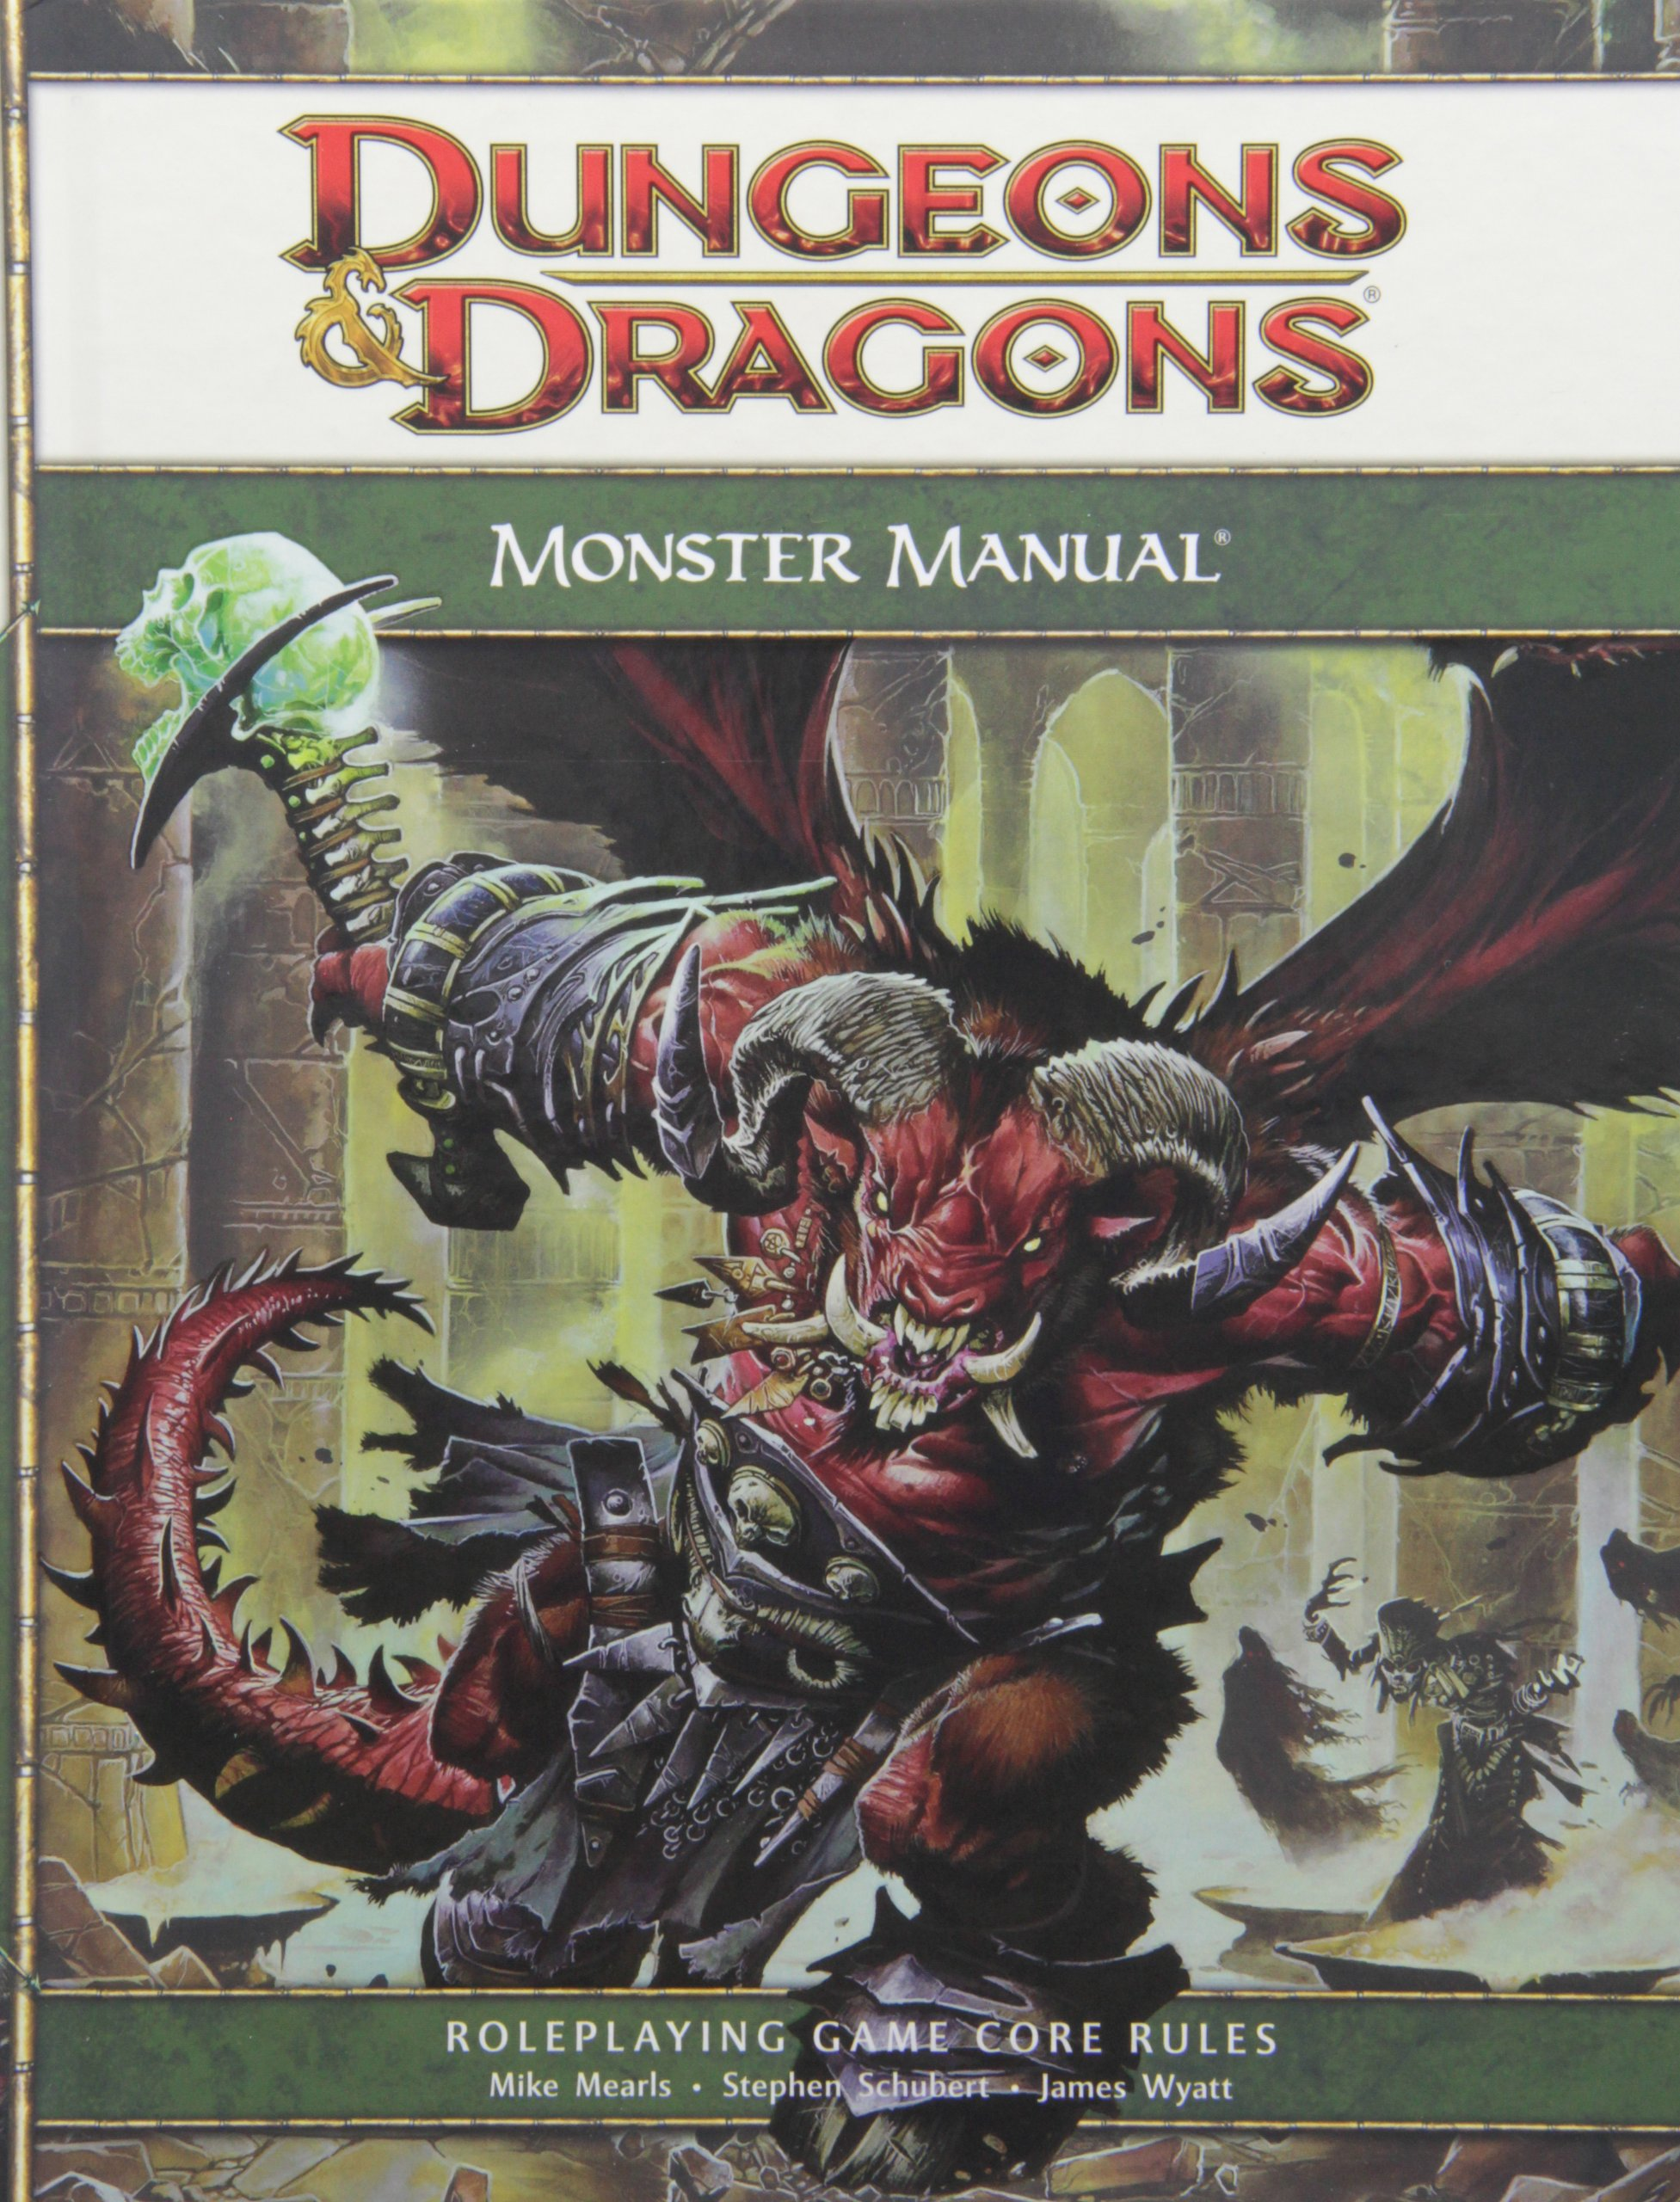 Dungeons & Dragons Monster Manual: Roleplaying Game Core Rules, 4th  Edition: Mike Mearls, Stephen Schubert, James Wyatt: 9780786948529:  Amazon.com: Books